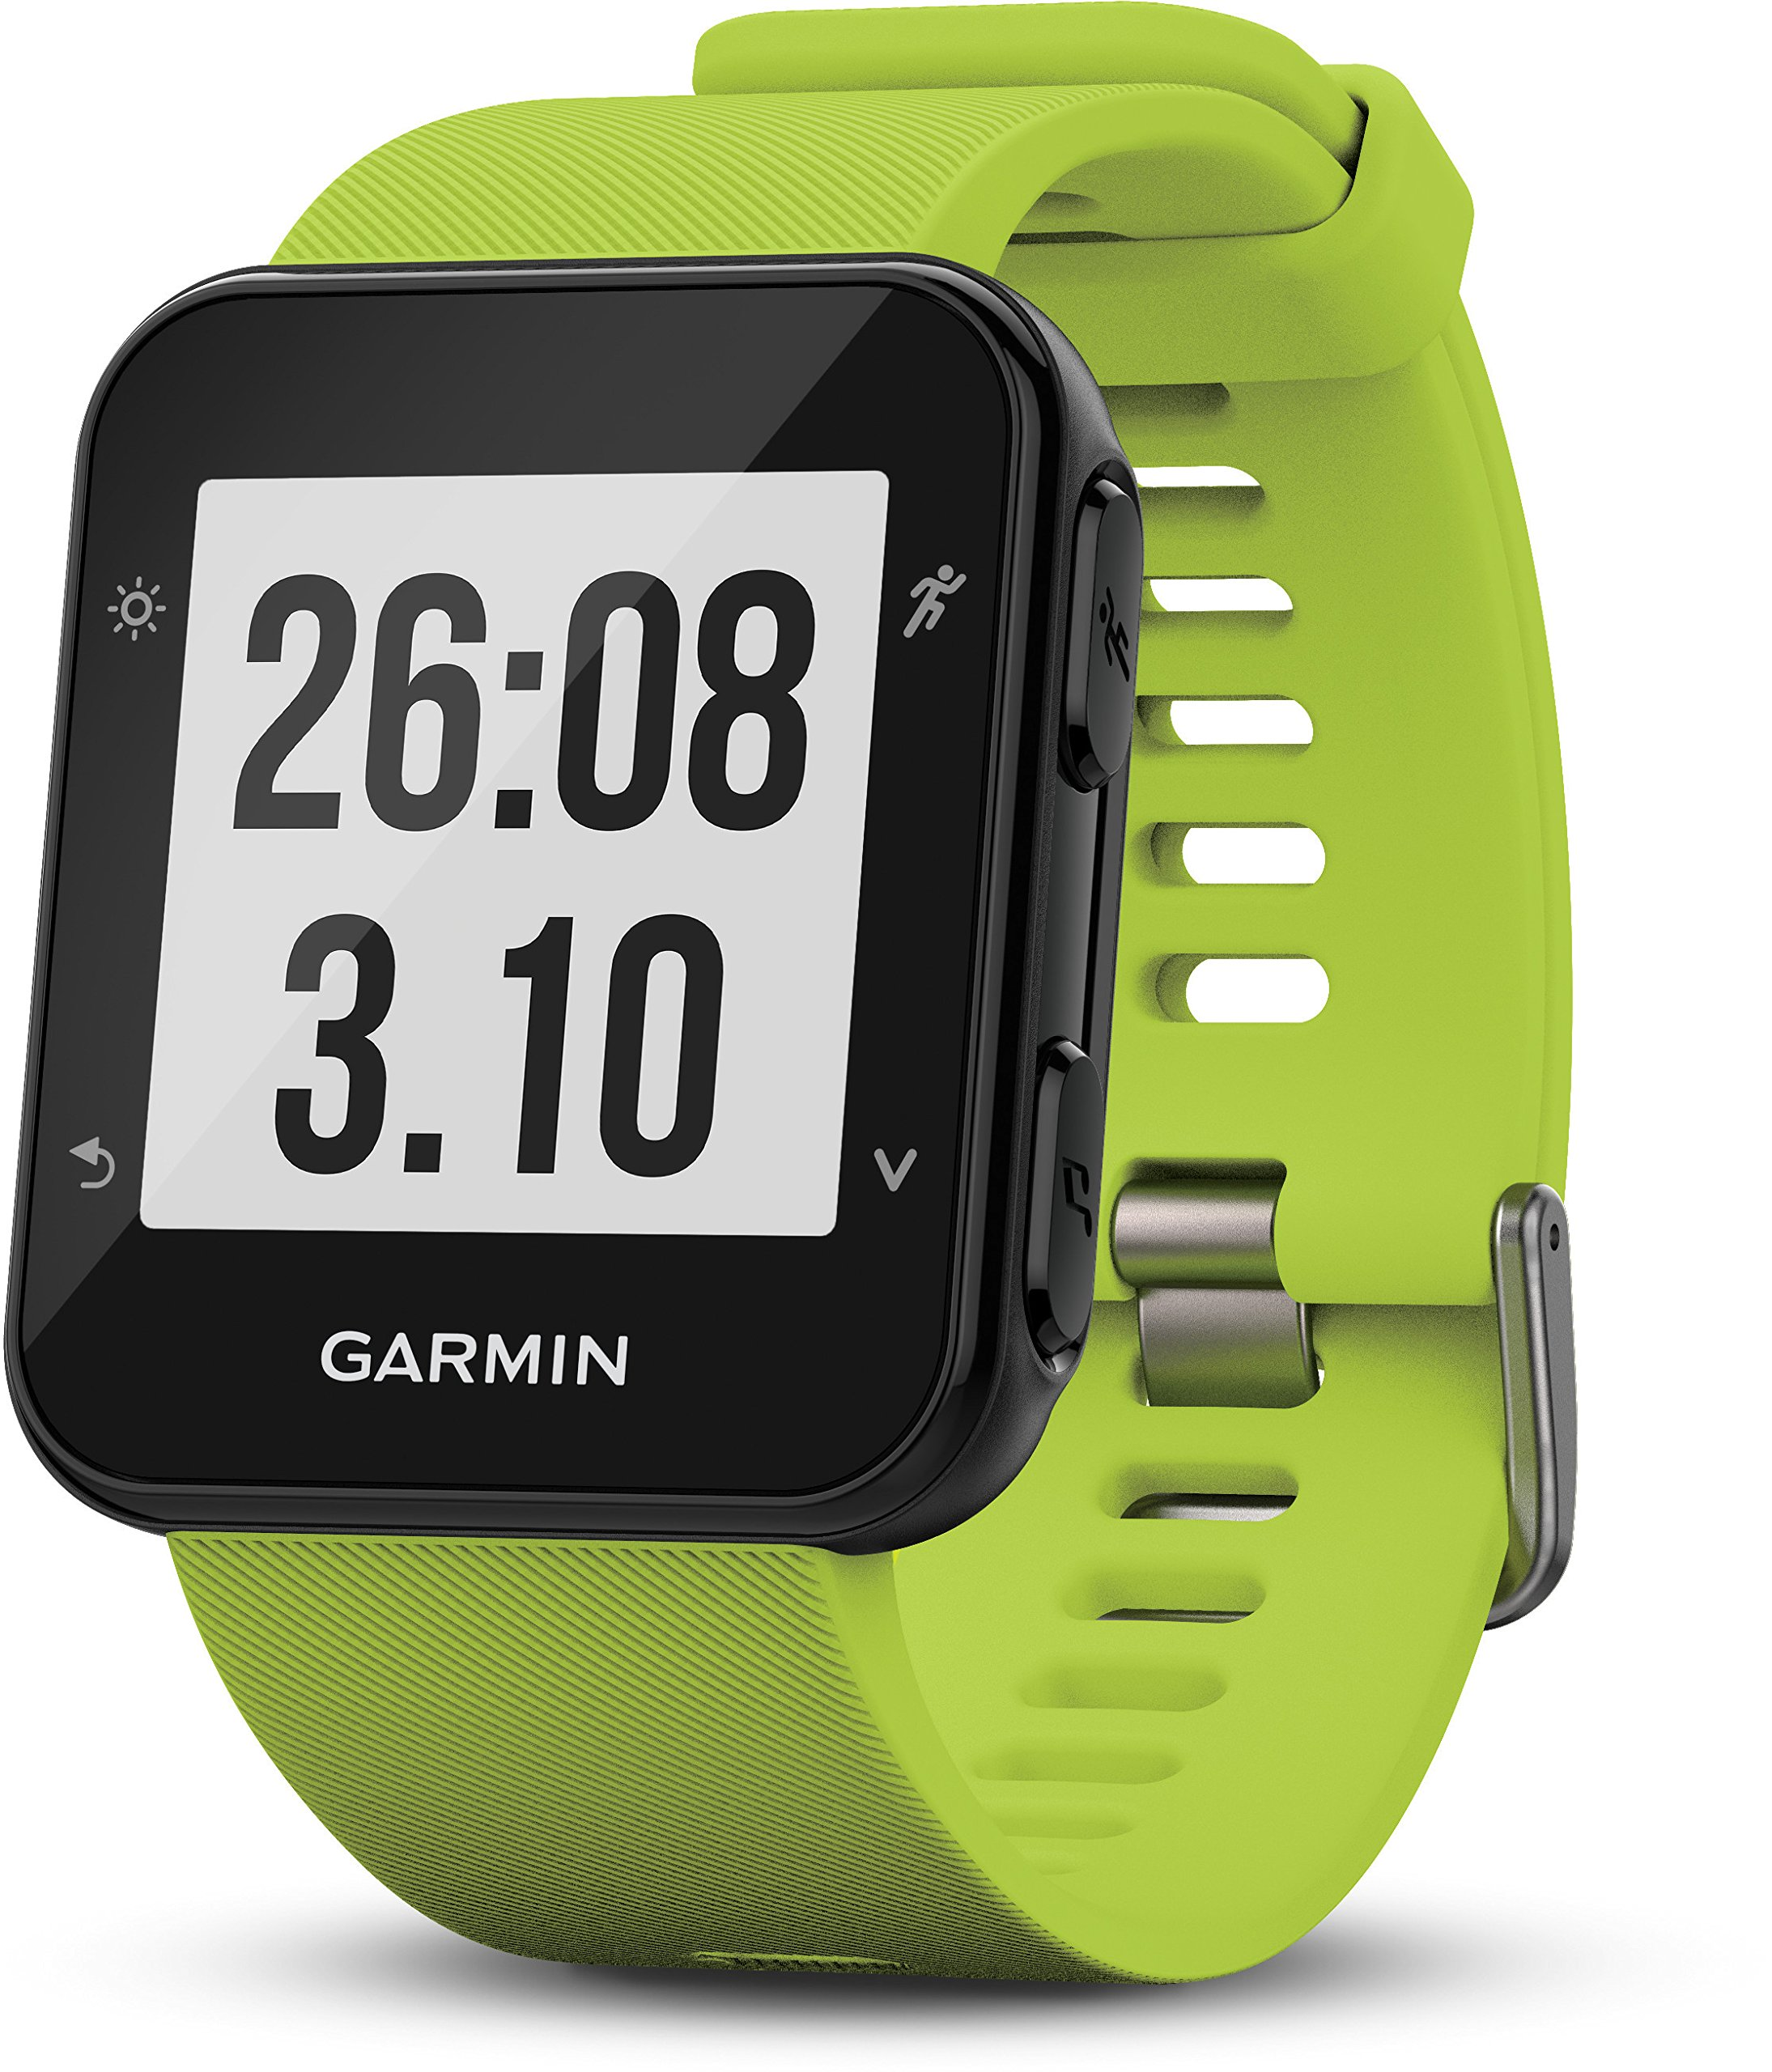 91BUVvsmrVL - Garmin Forerunner 35 GPS Running Watch with Wrist-Based Heart Rate and Workouts,010-01689-12